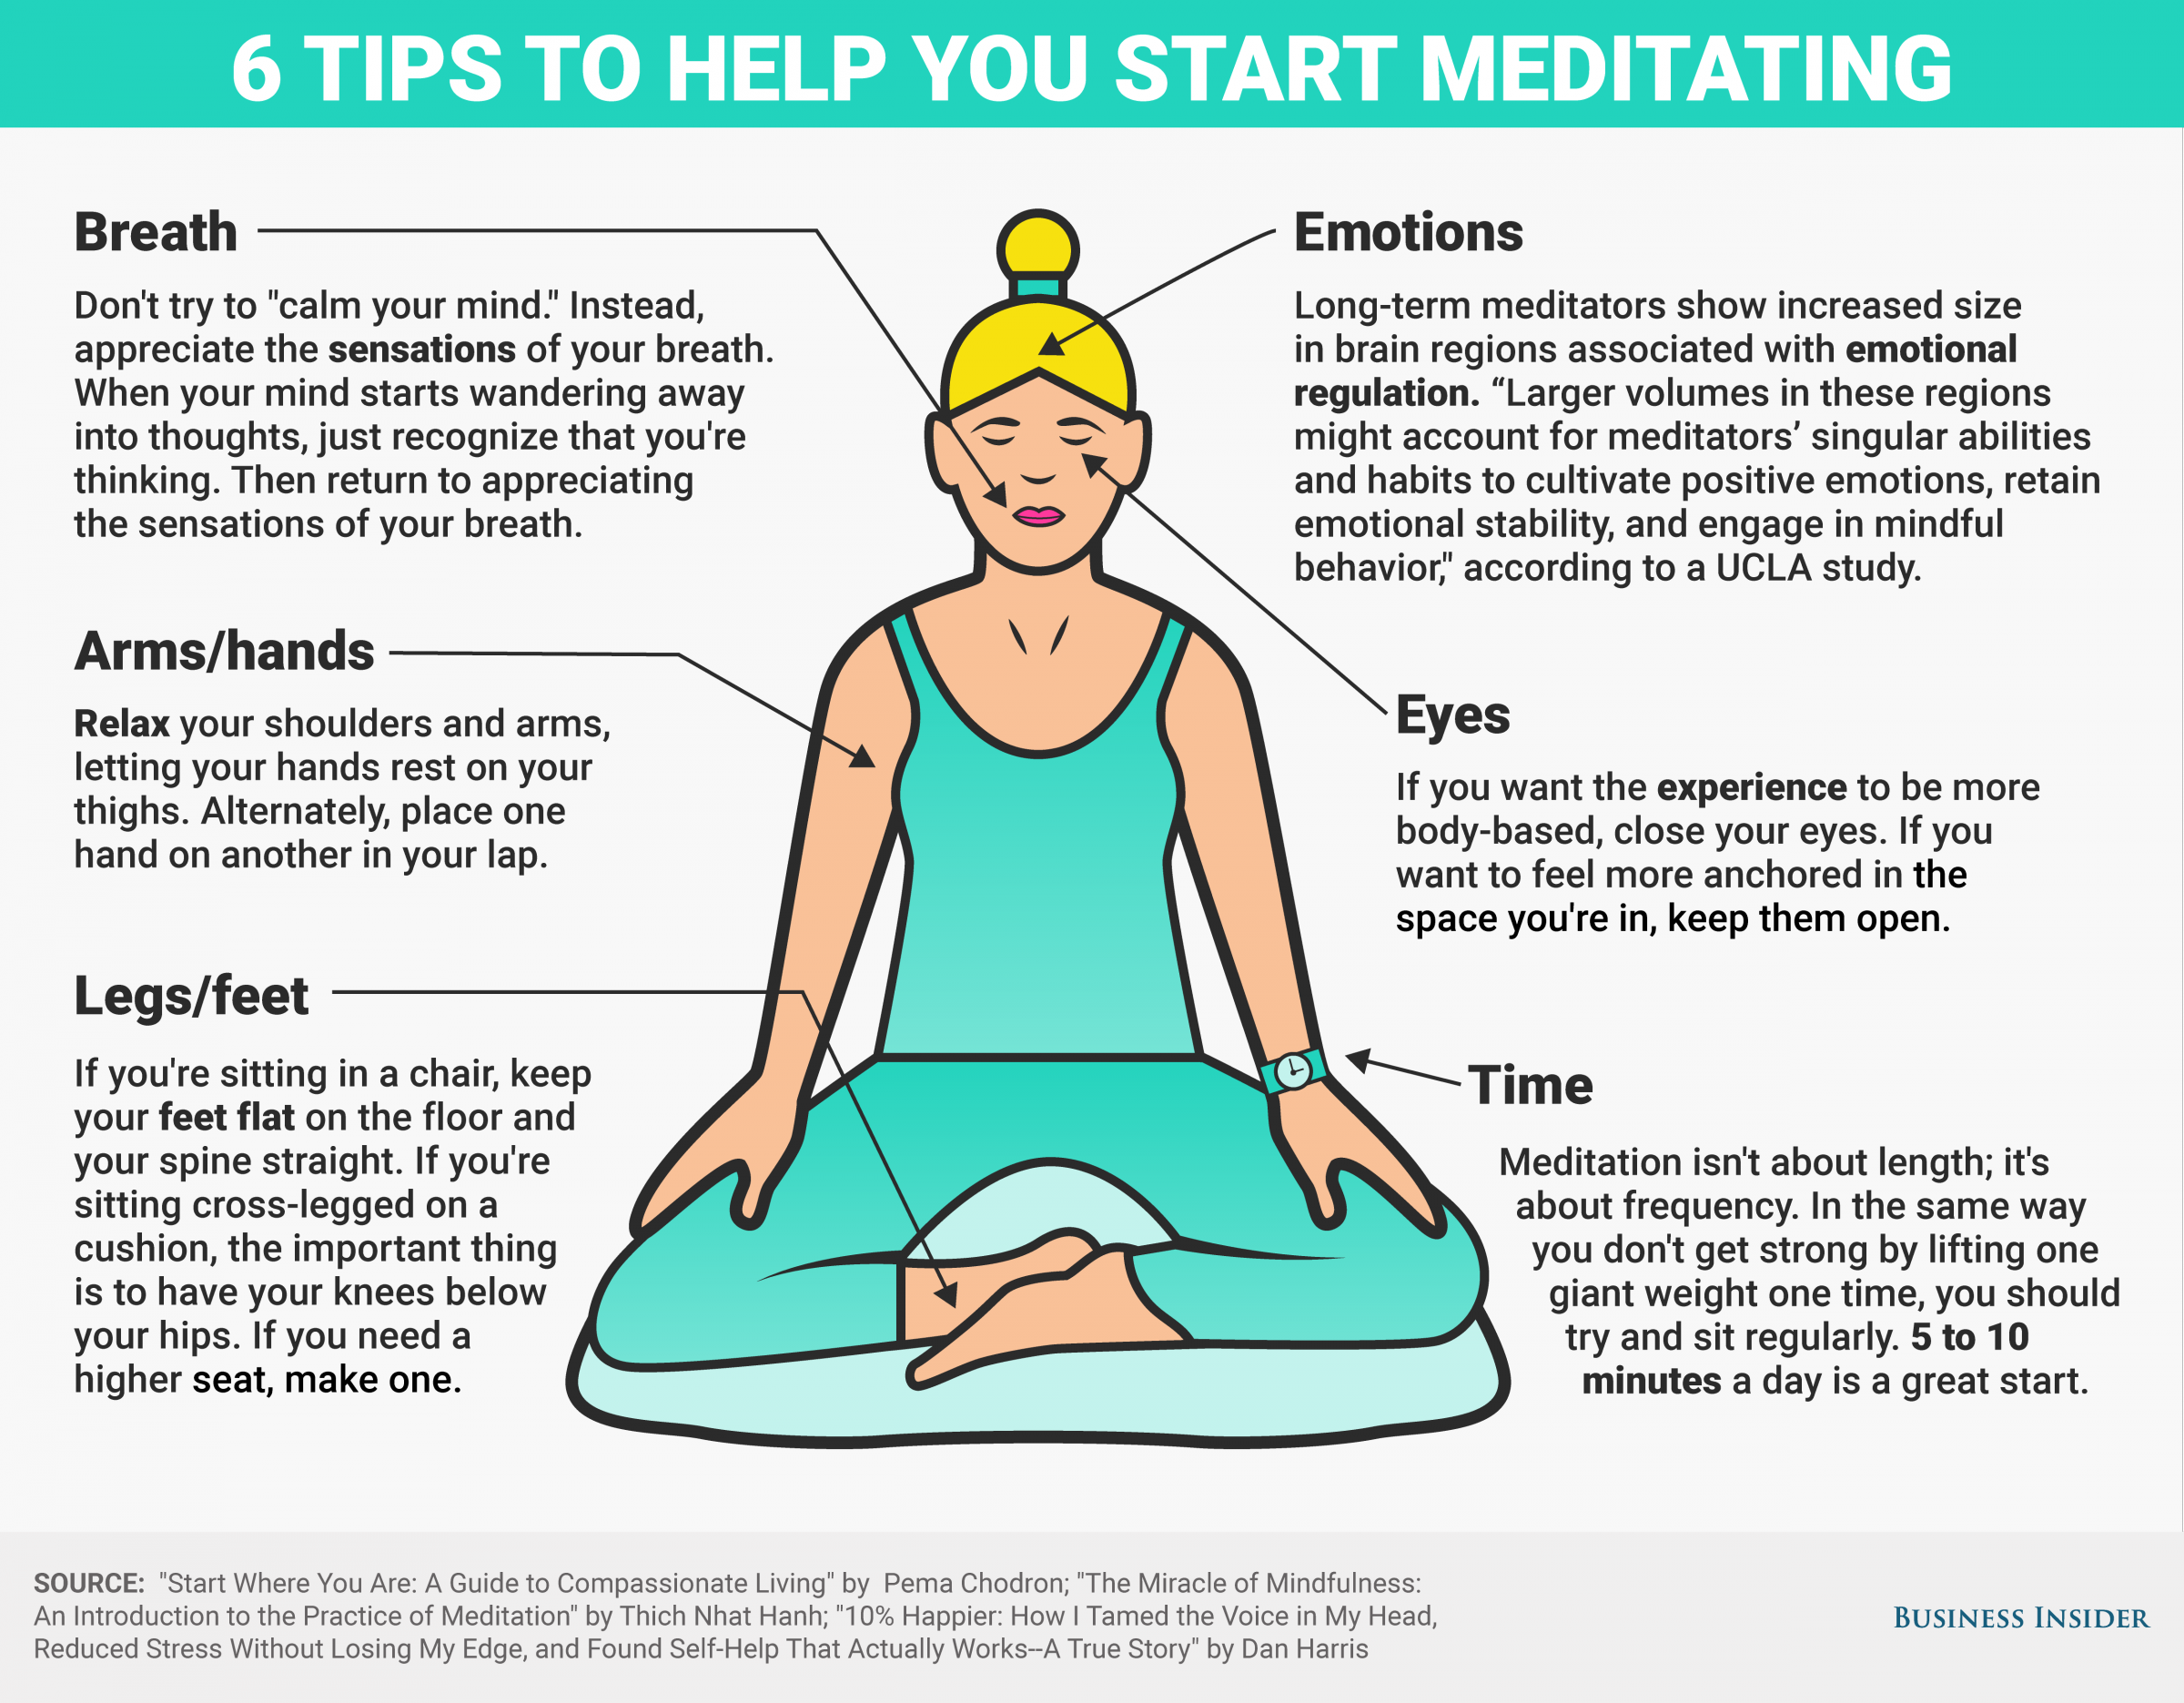 Meditation Techniques For Beginners - 3 Simple Tips To Get ...